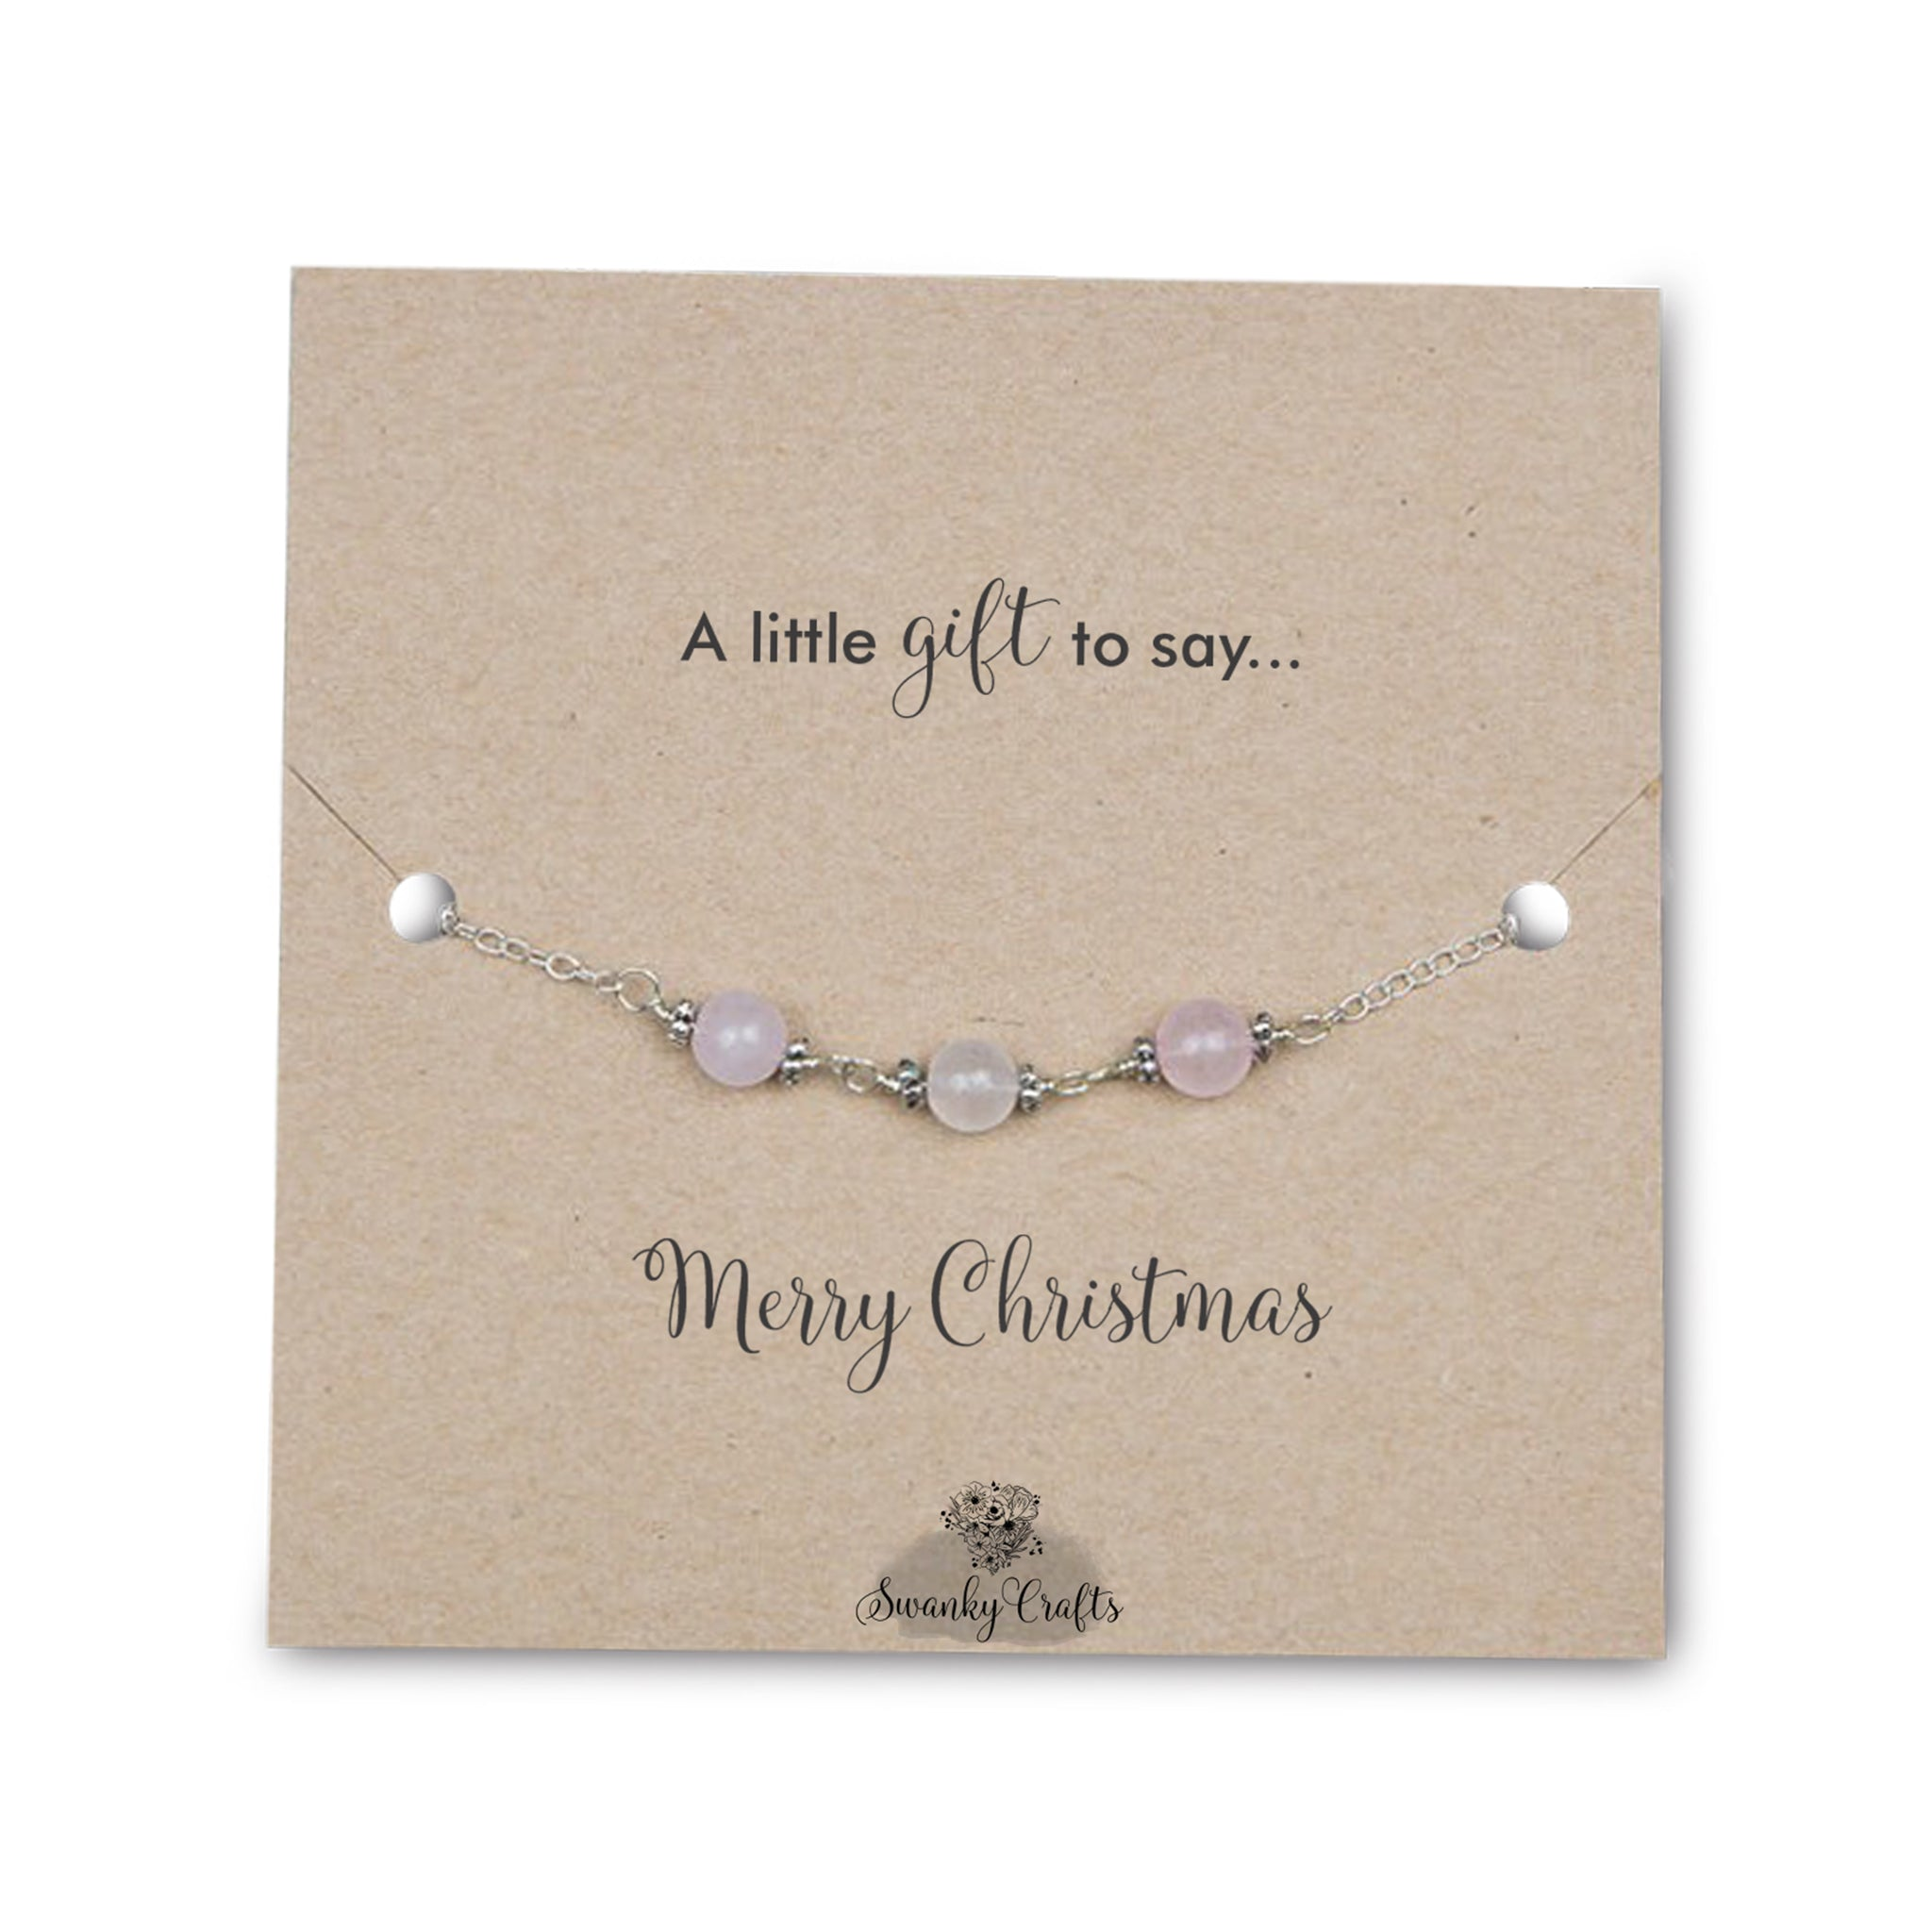 Christmas Gifts for Her - Handmade Rose Quartz Bracelet - Swanky Collection